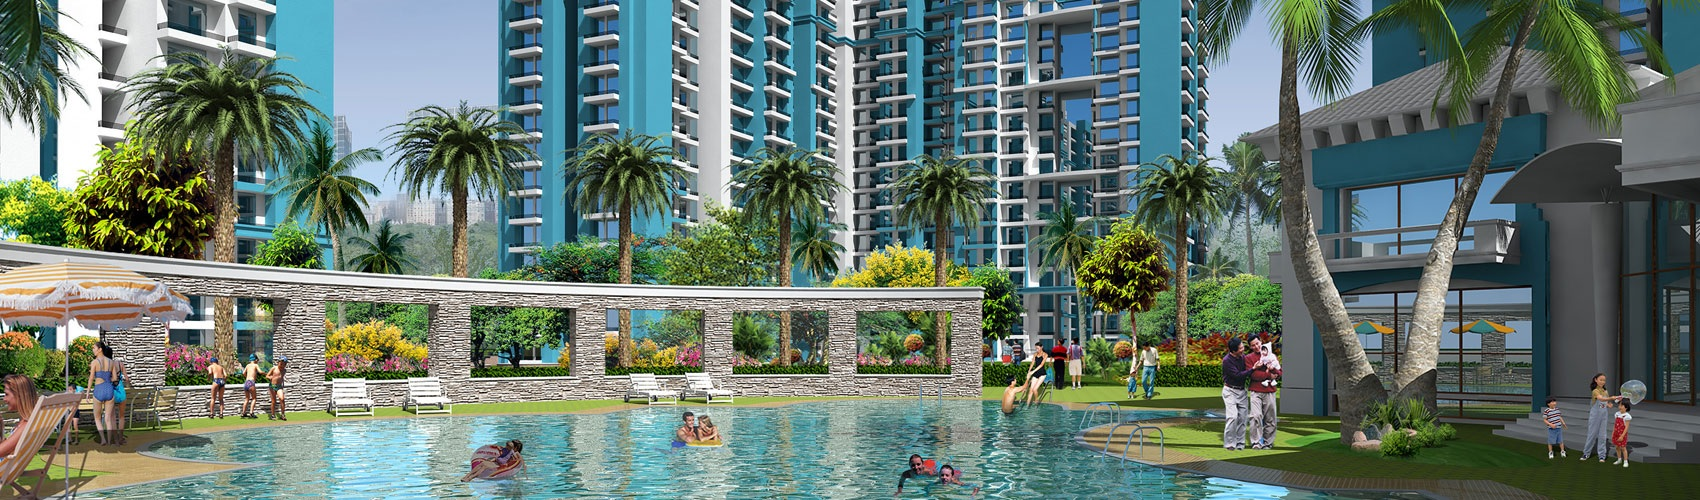 amenities-features-Picture-gardenia-golf-city-2677836